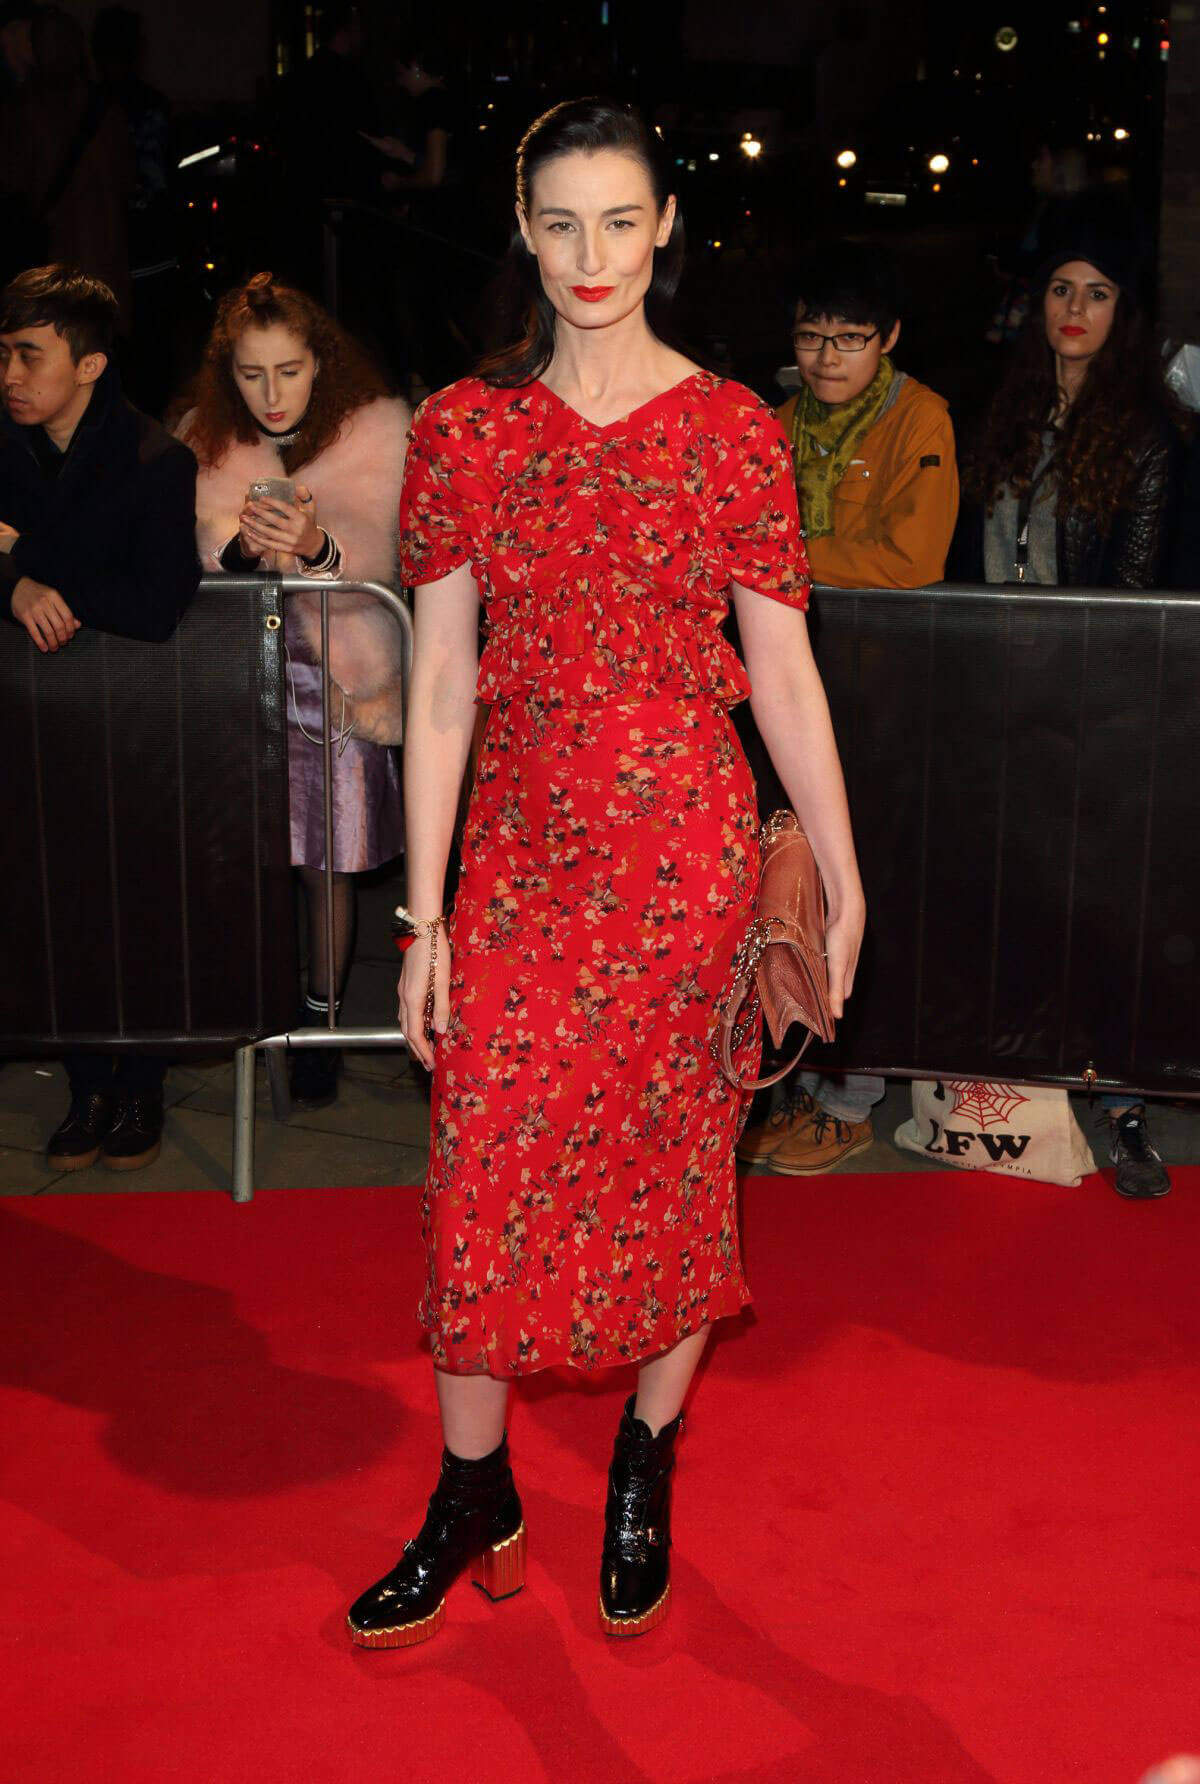 Erin O'Connor Stills at The Naked Heart Foundation Fabulous Fund Fair in London